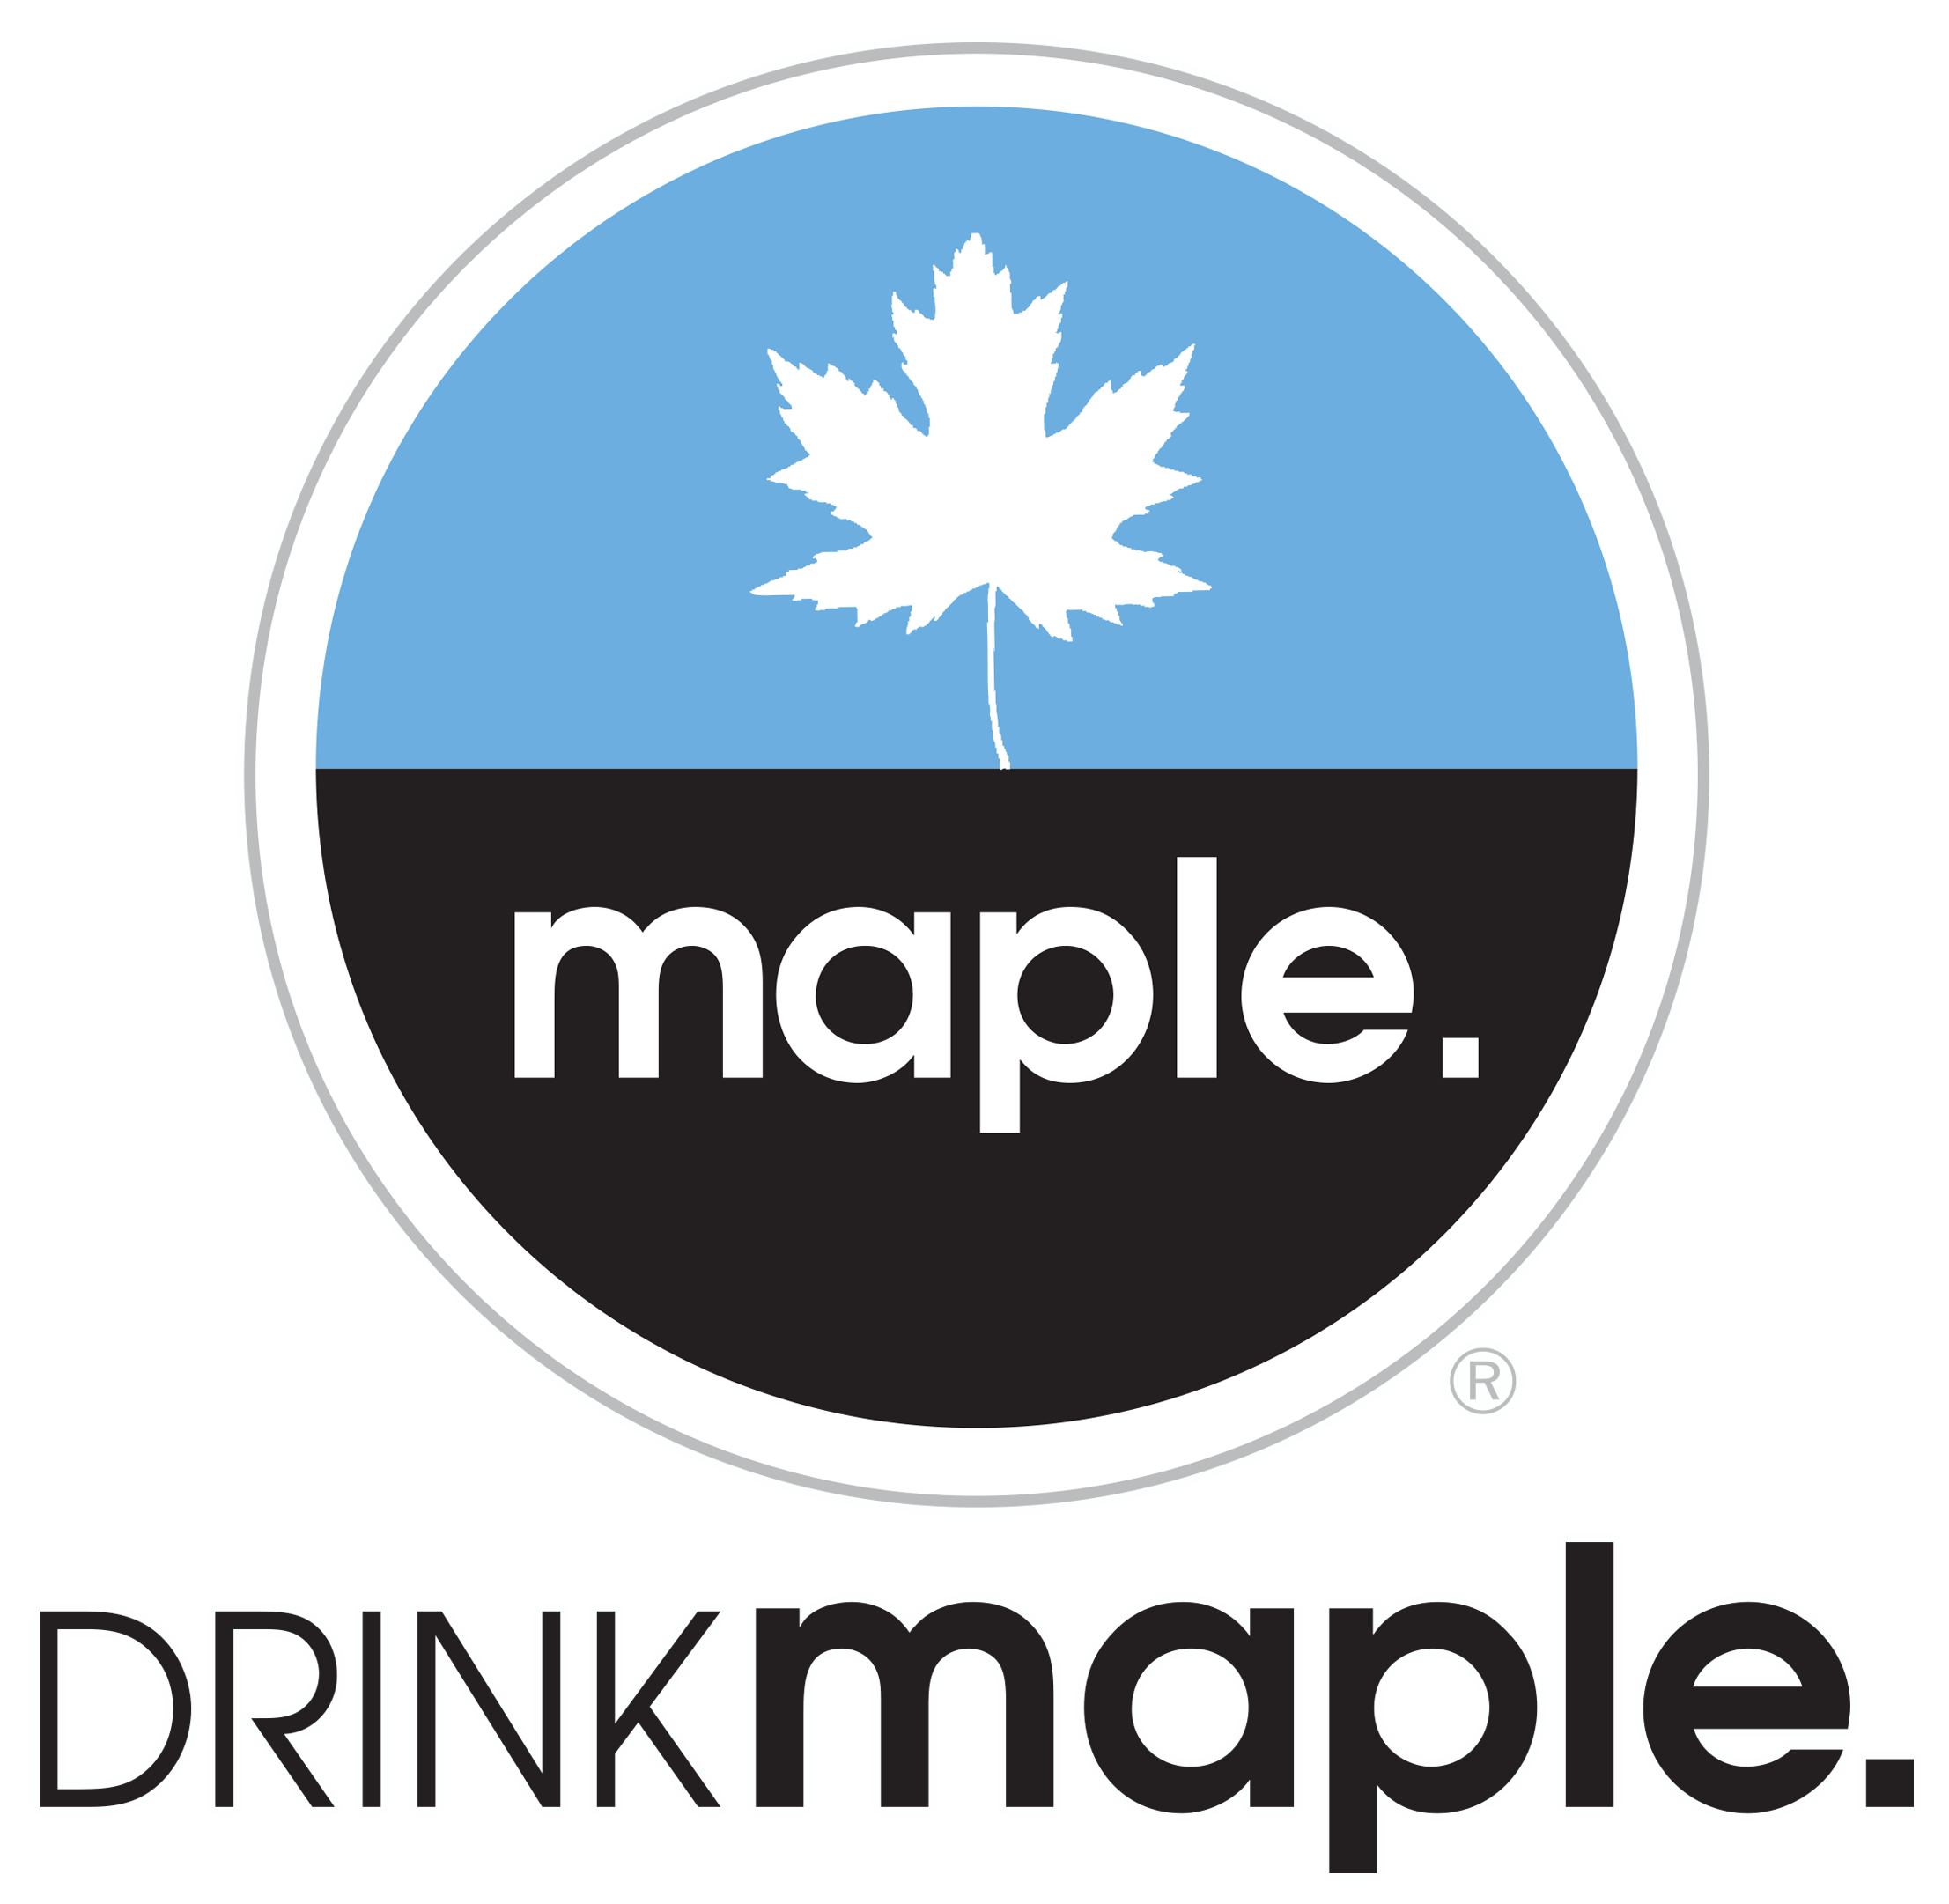 Drink-Maple-e1460667976187_200x60